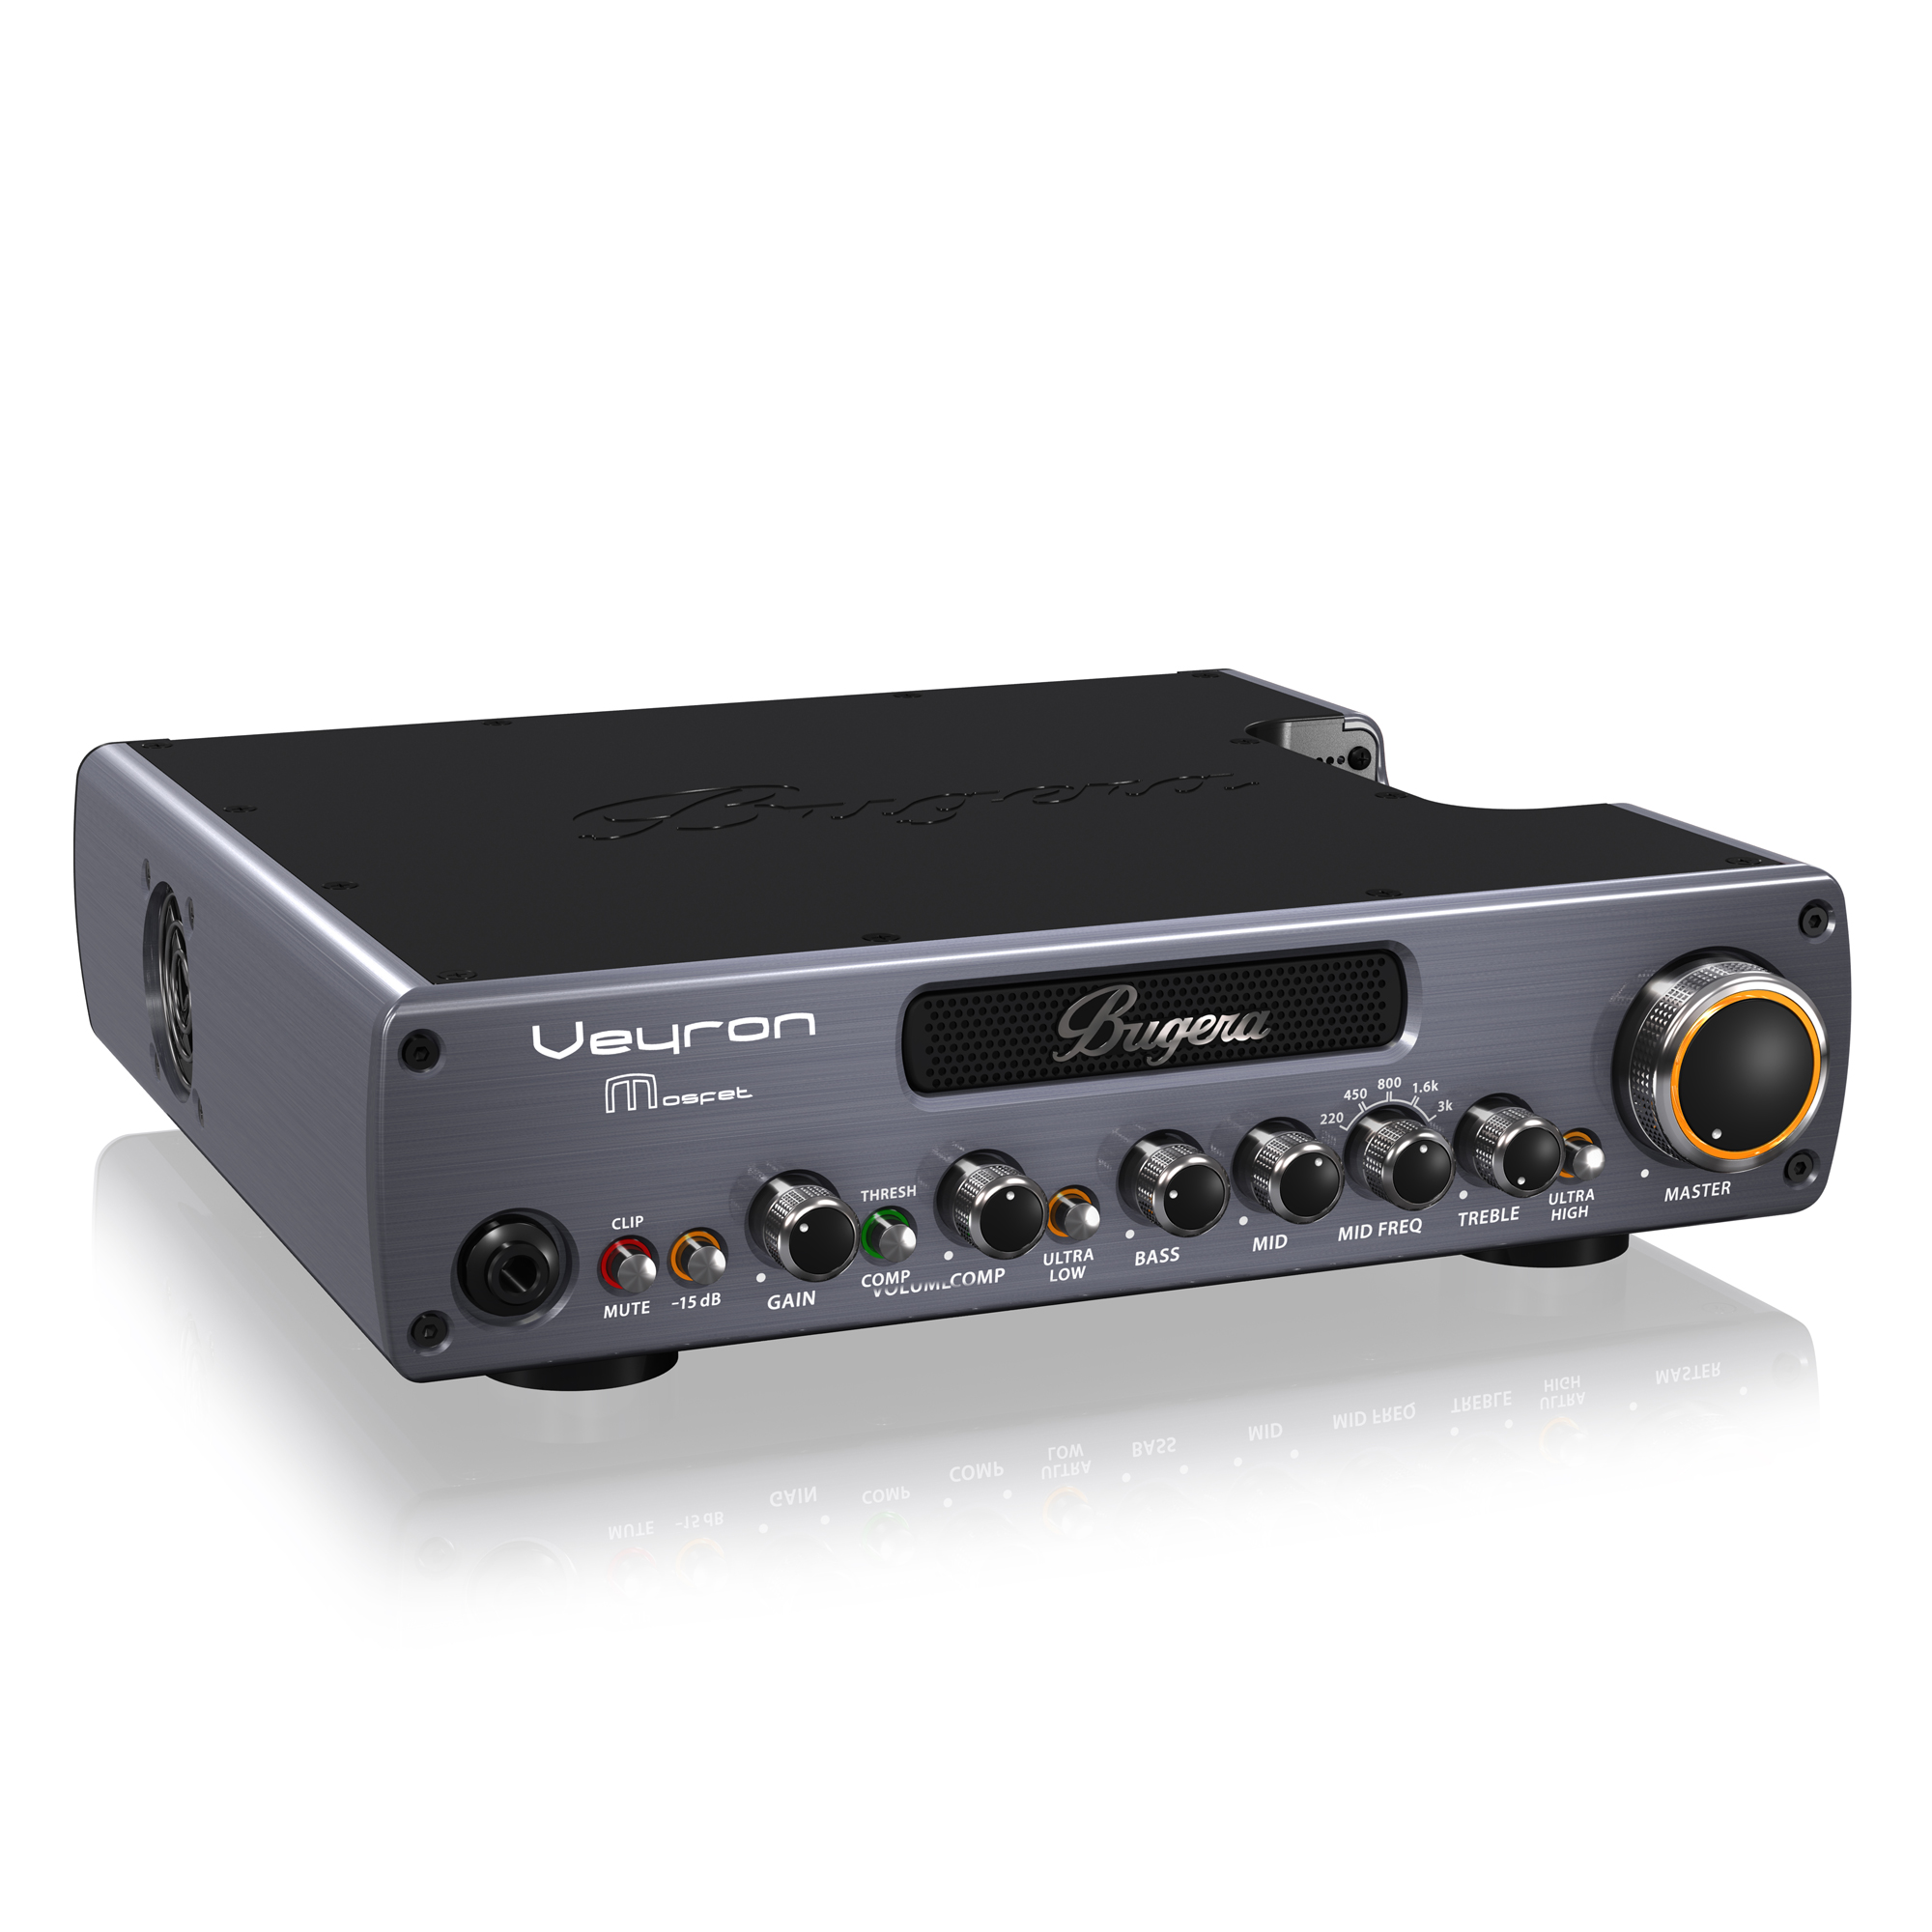 Ultra-Compact 2,000-Watt Class-D Bass Amplifier with MOSFET Preamp, Compressor and DYNAMIZER Technology